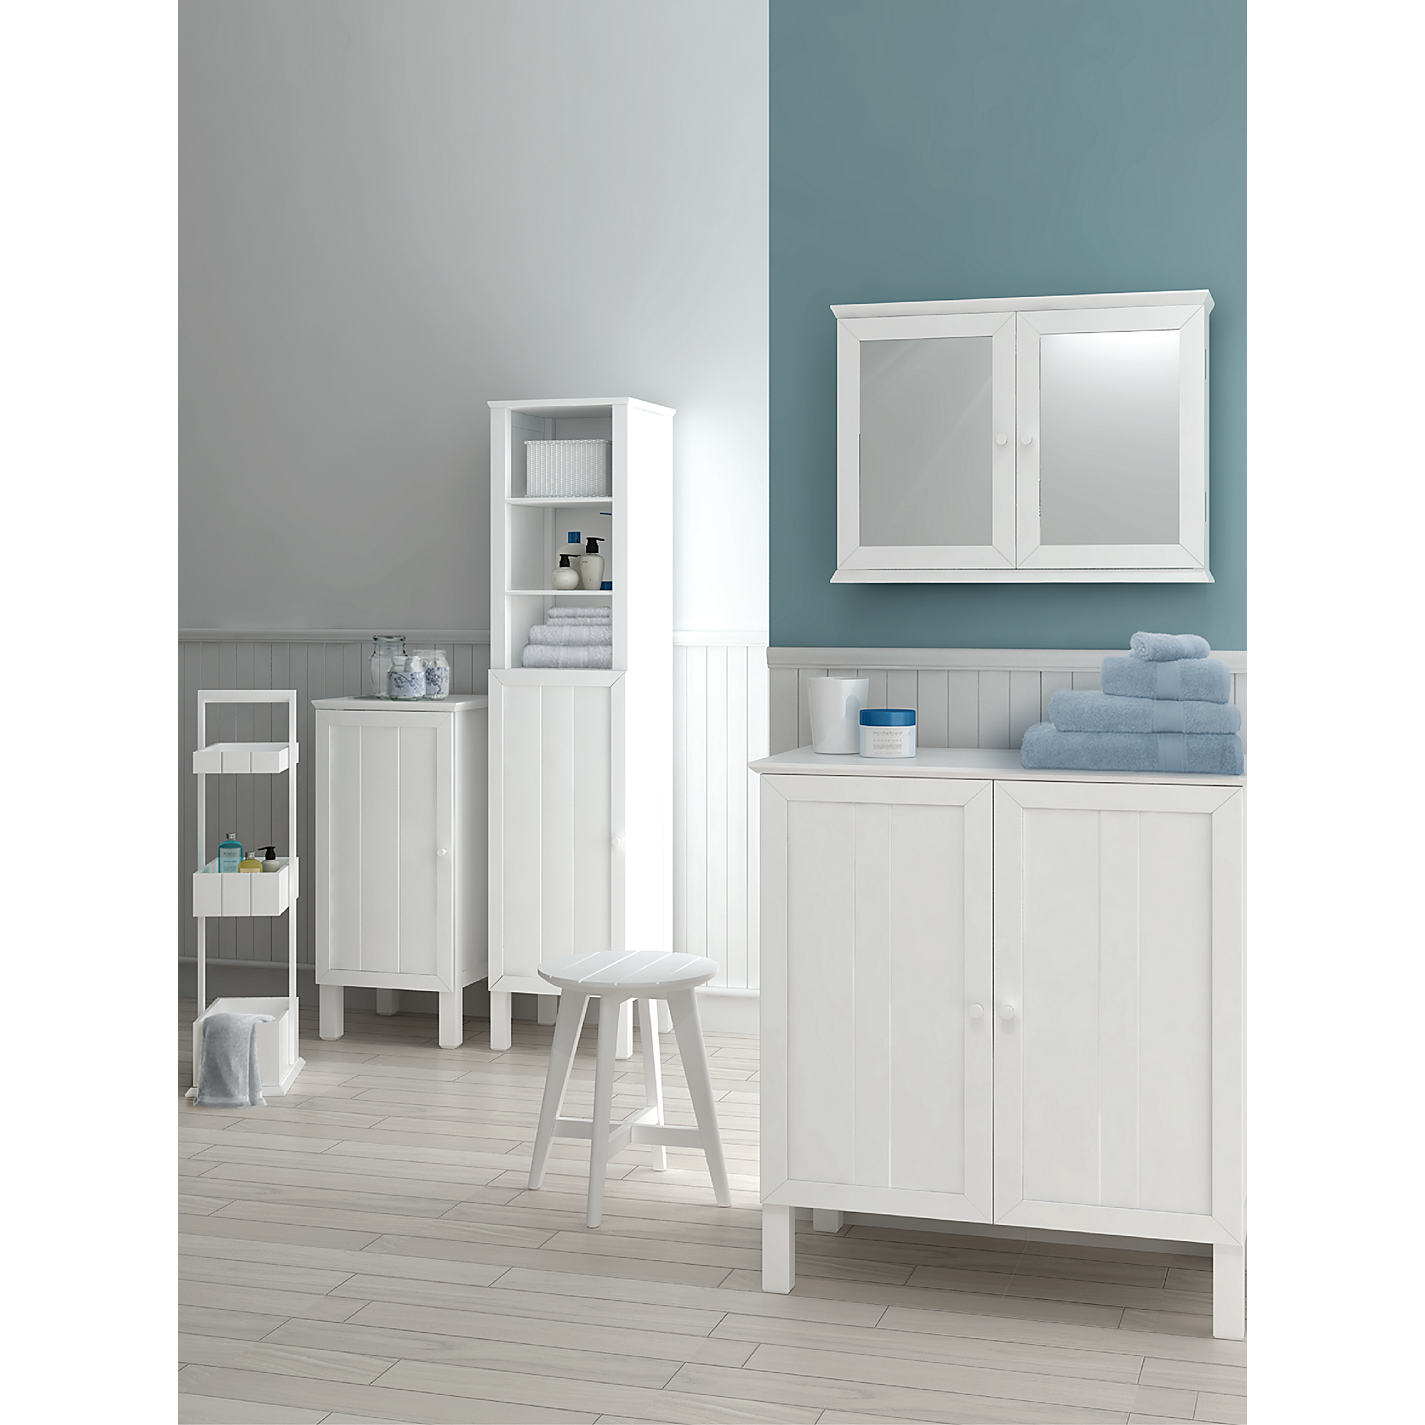 plain bathroom cabinets john lewis st ives double mirrored cabinet - Bathroom Cabinets John Lewis